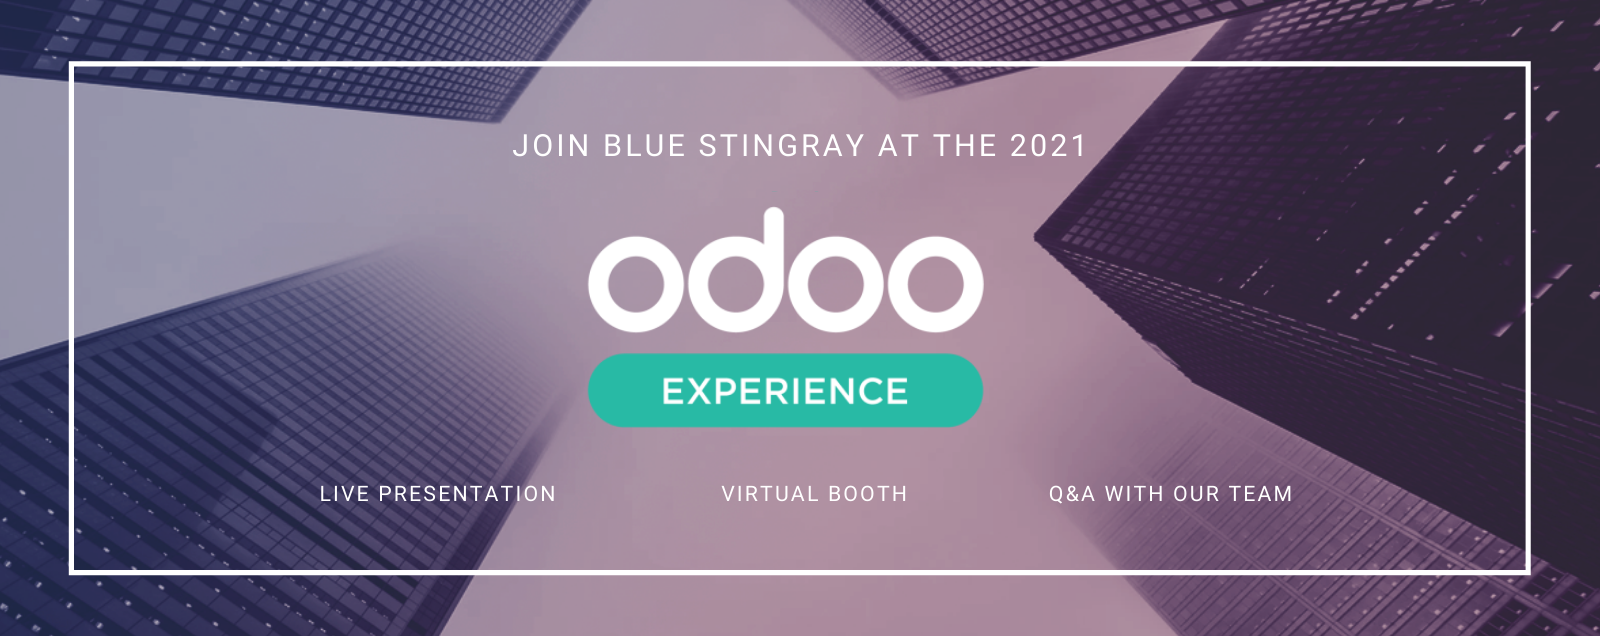 Join Blue Stingray at the 2021 Odoo Experience